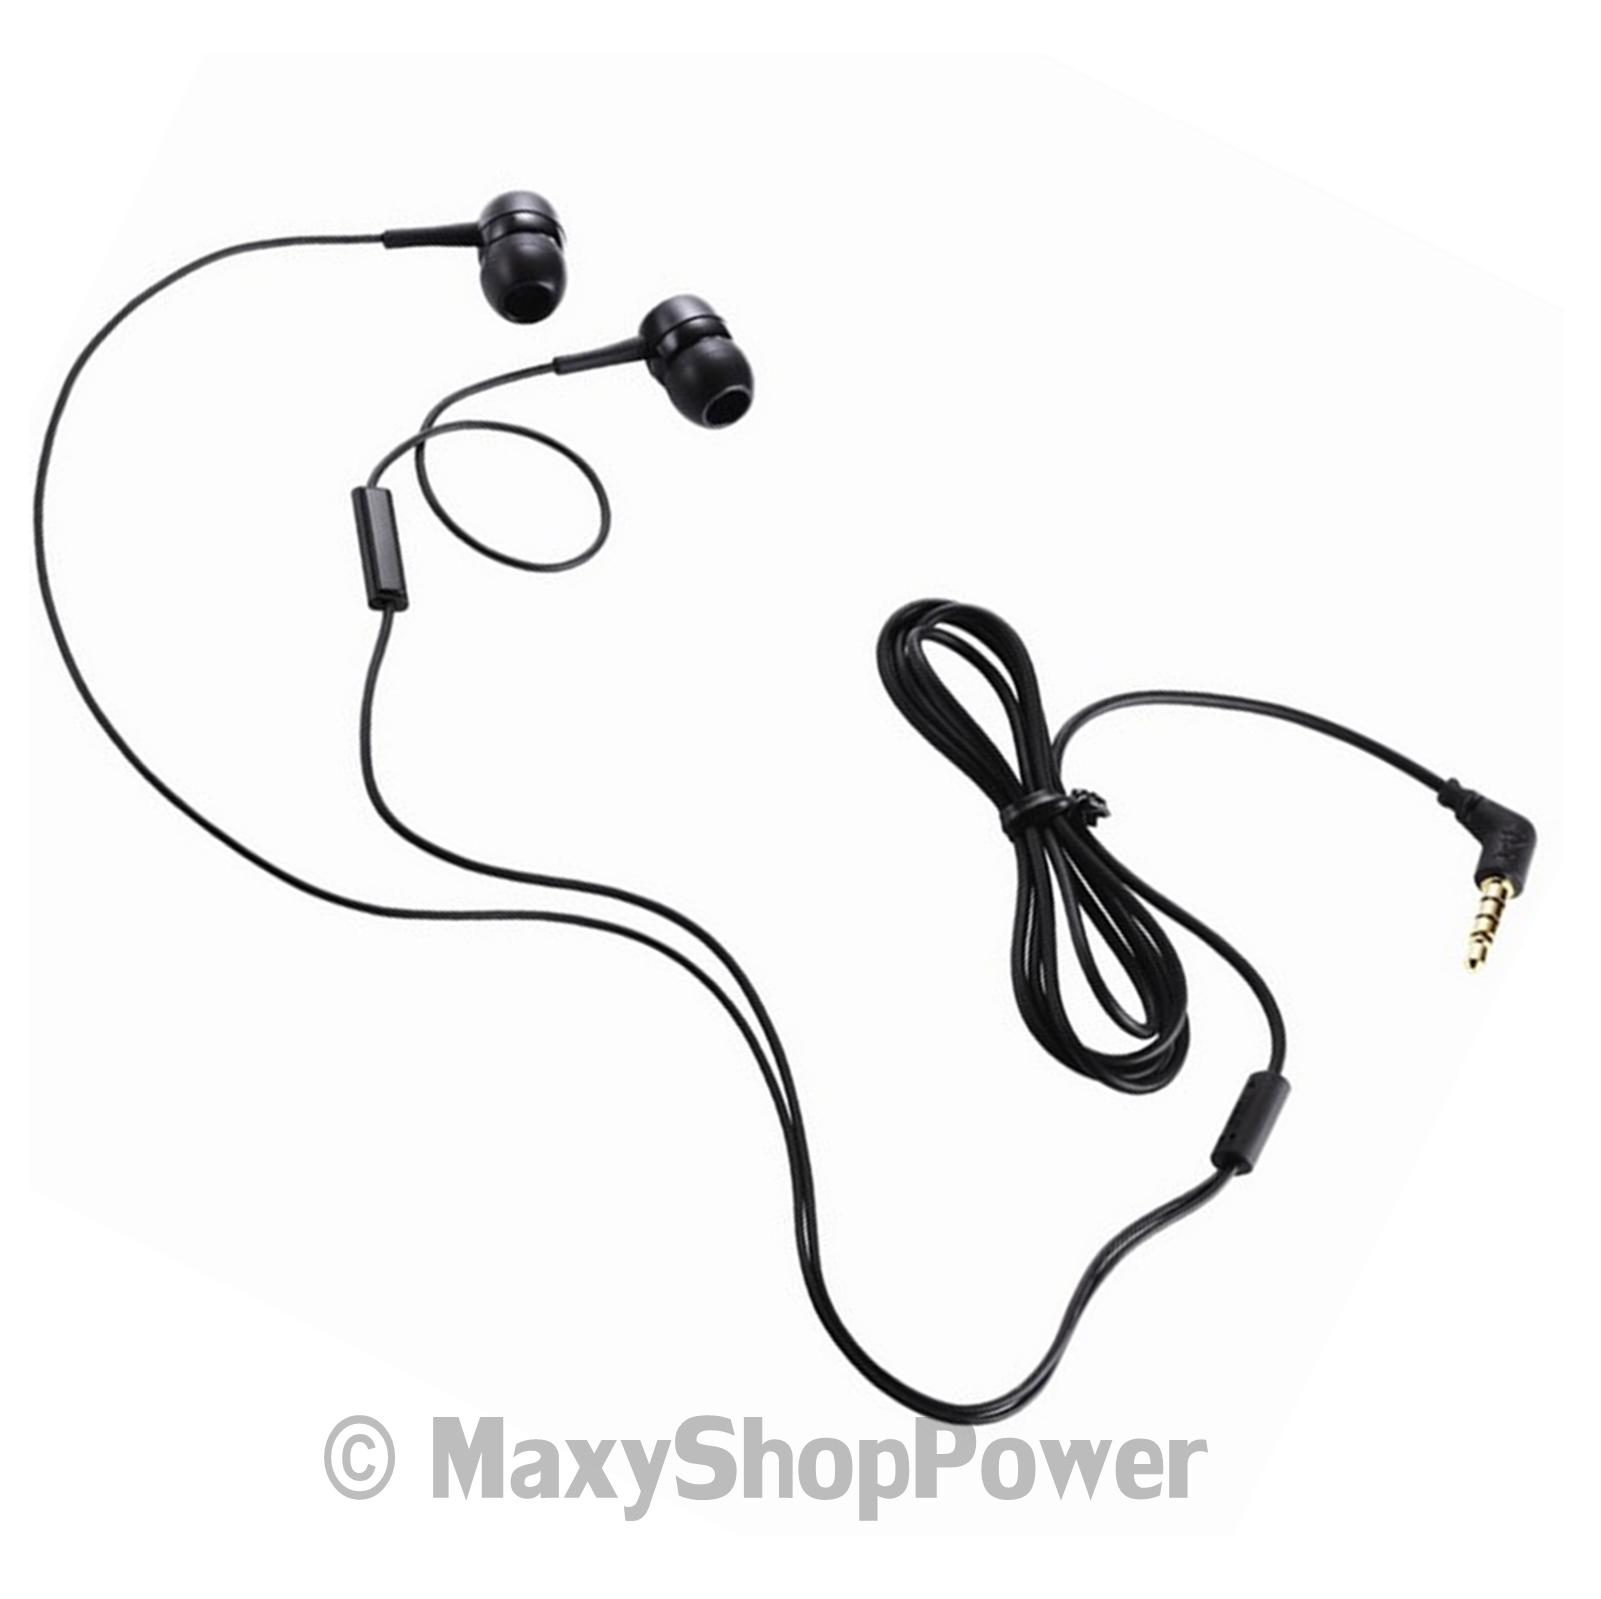 Lg Auricolare Originale Stereo In Ear Sgey Black Bulk